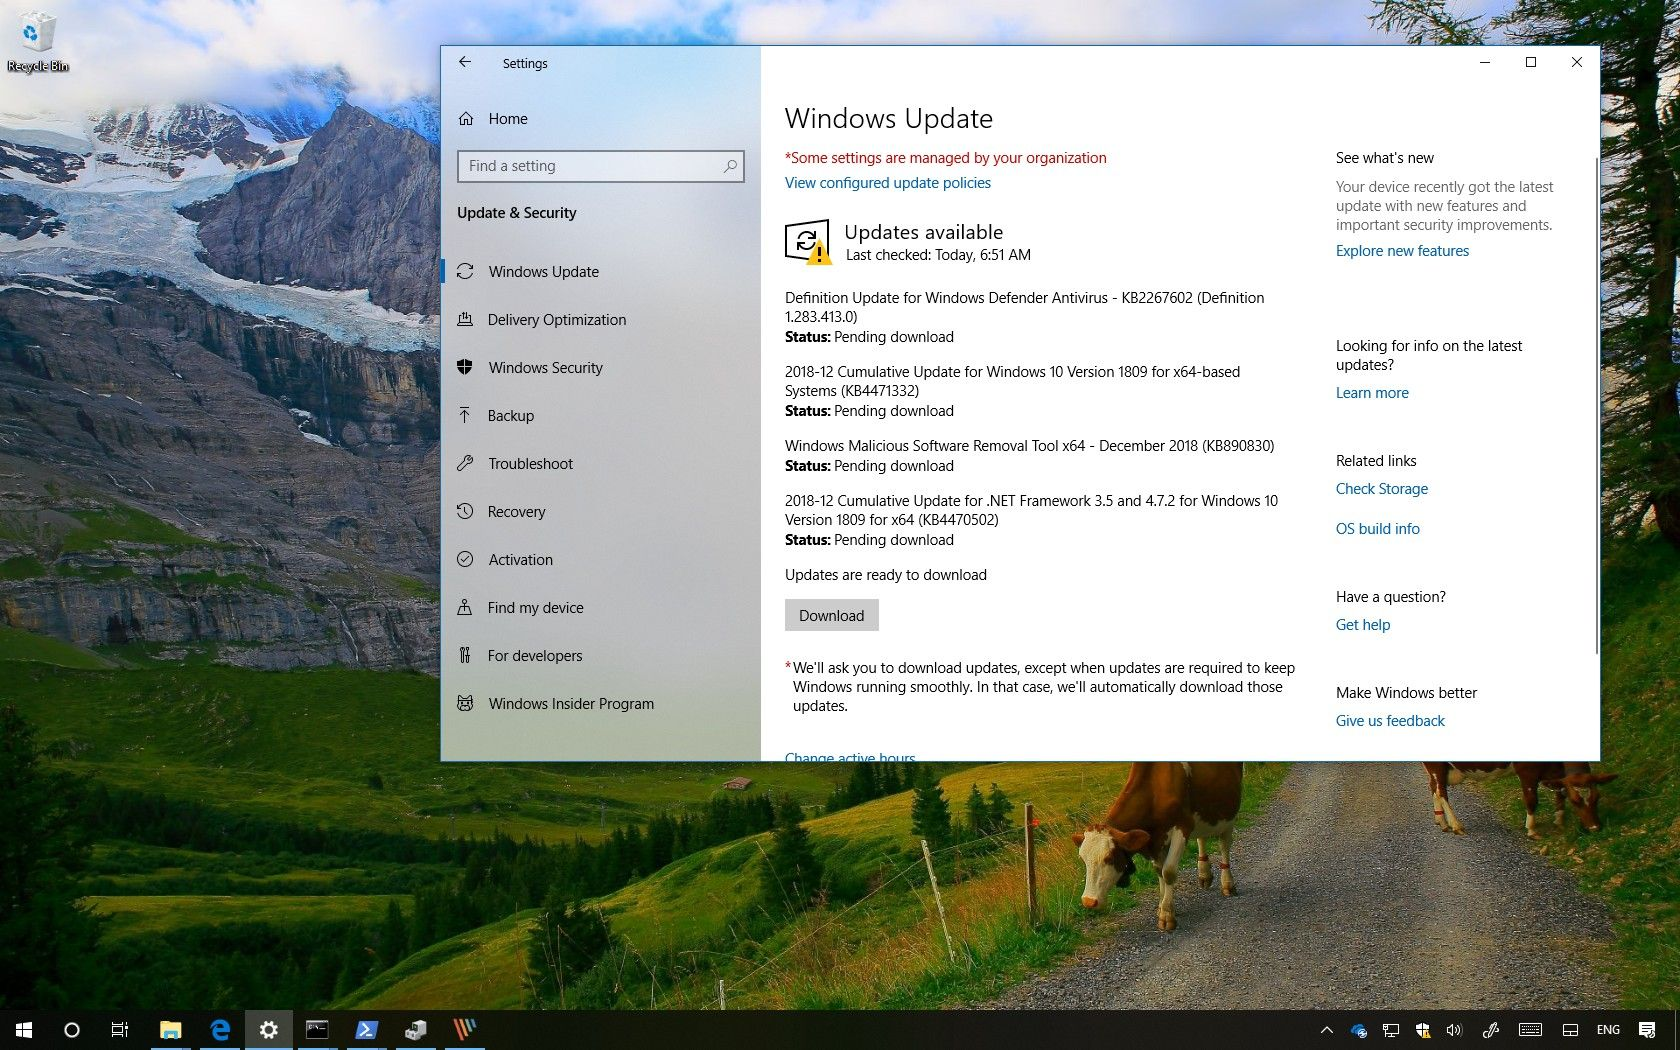 KB4471332 update for Windows 10 version 1809